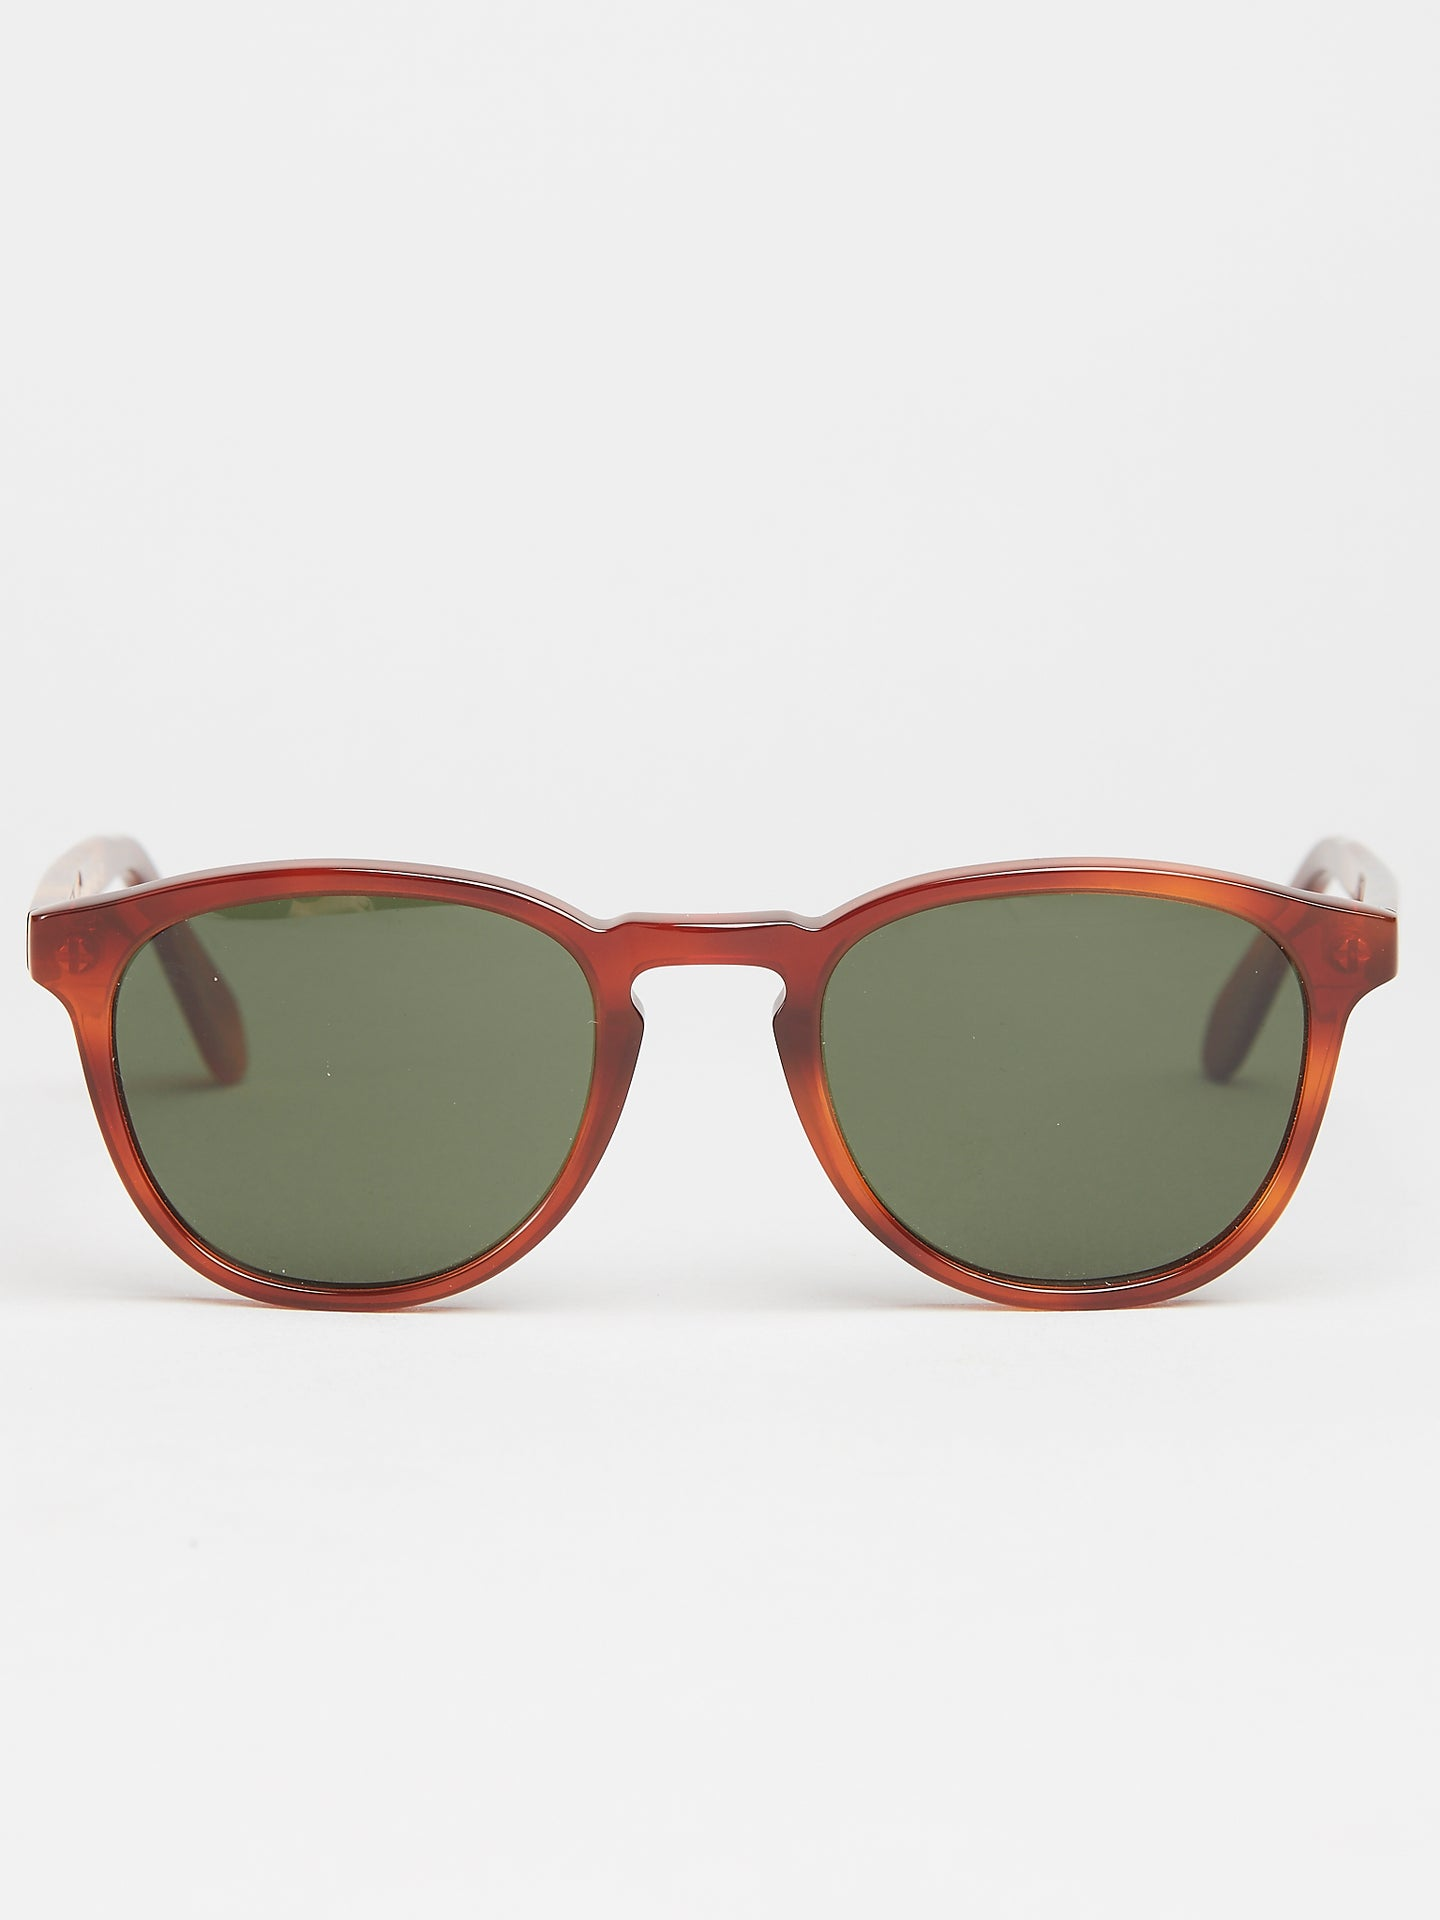 Edwardson Soho Sun Light Tortoise